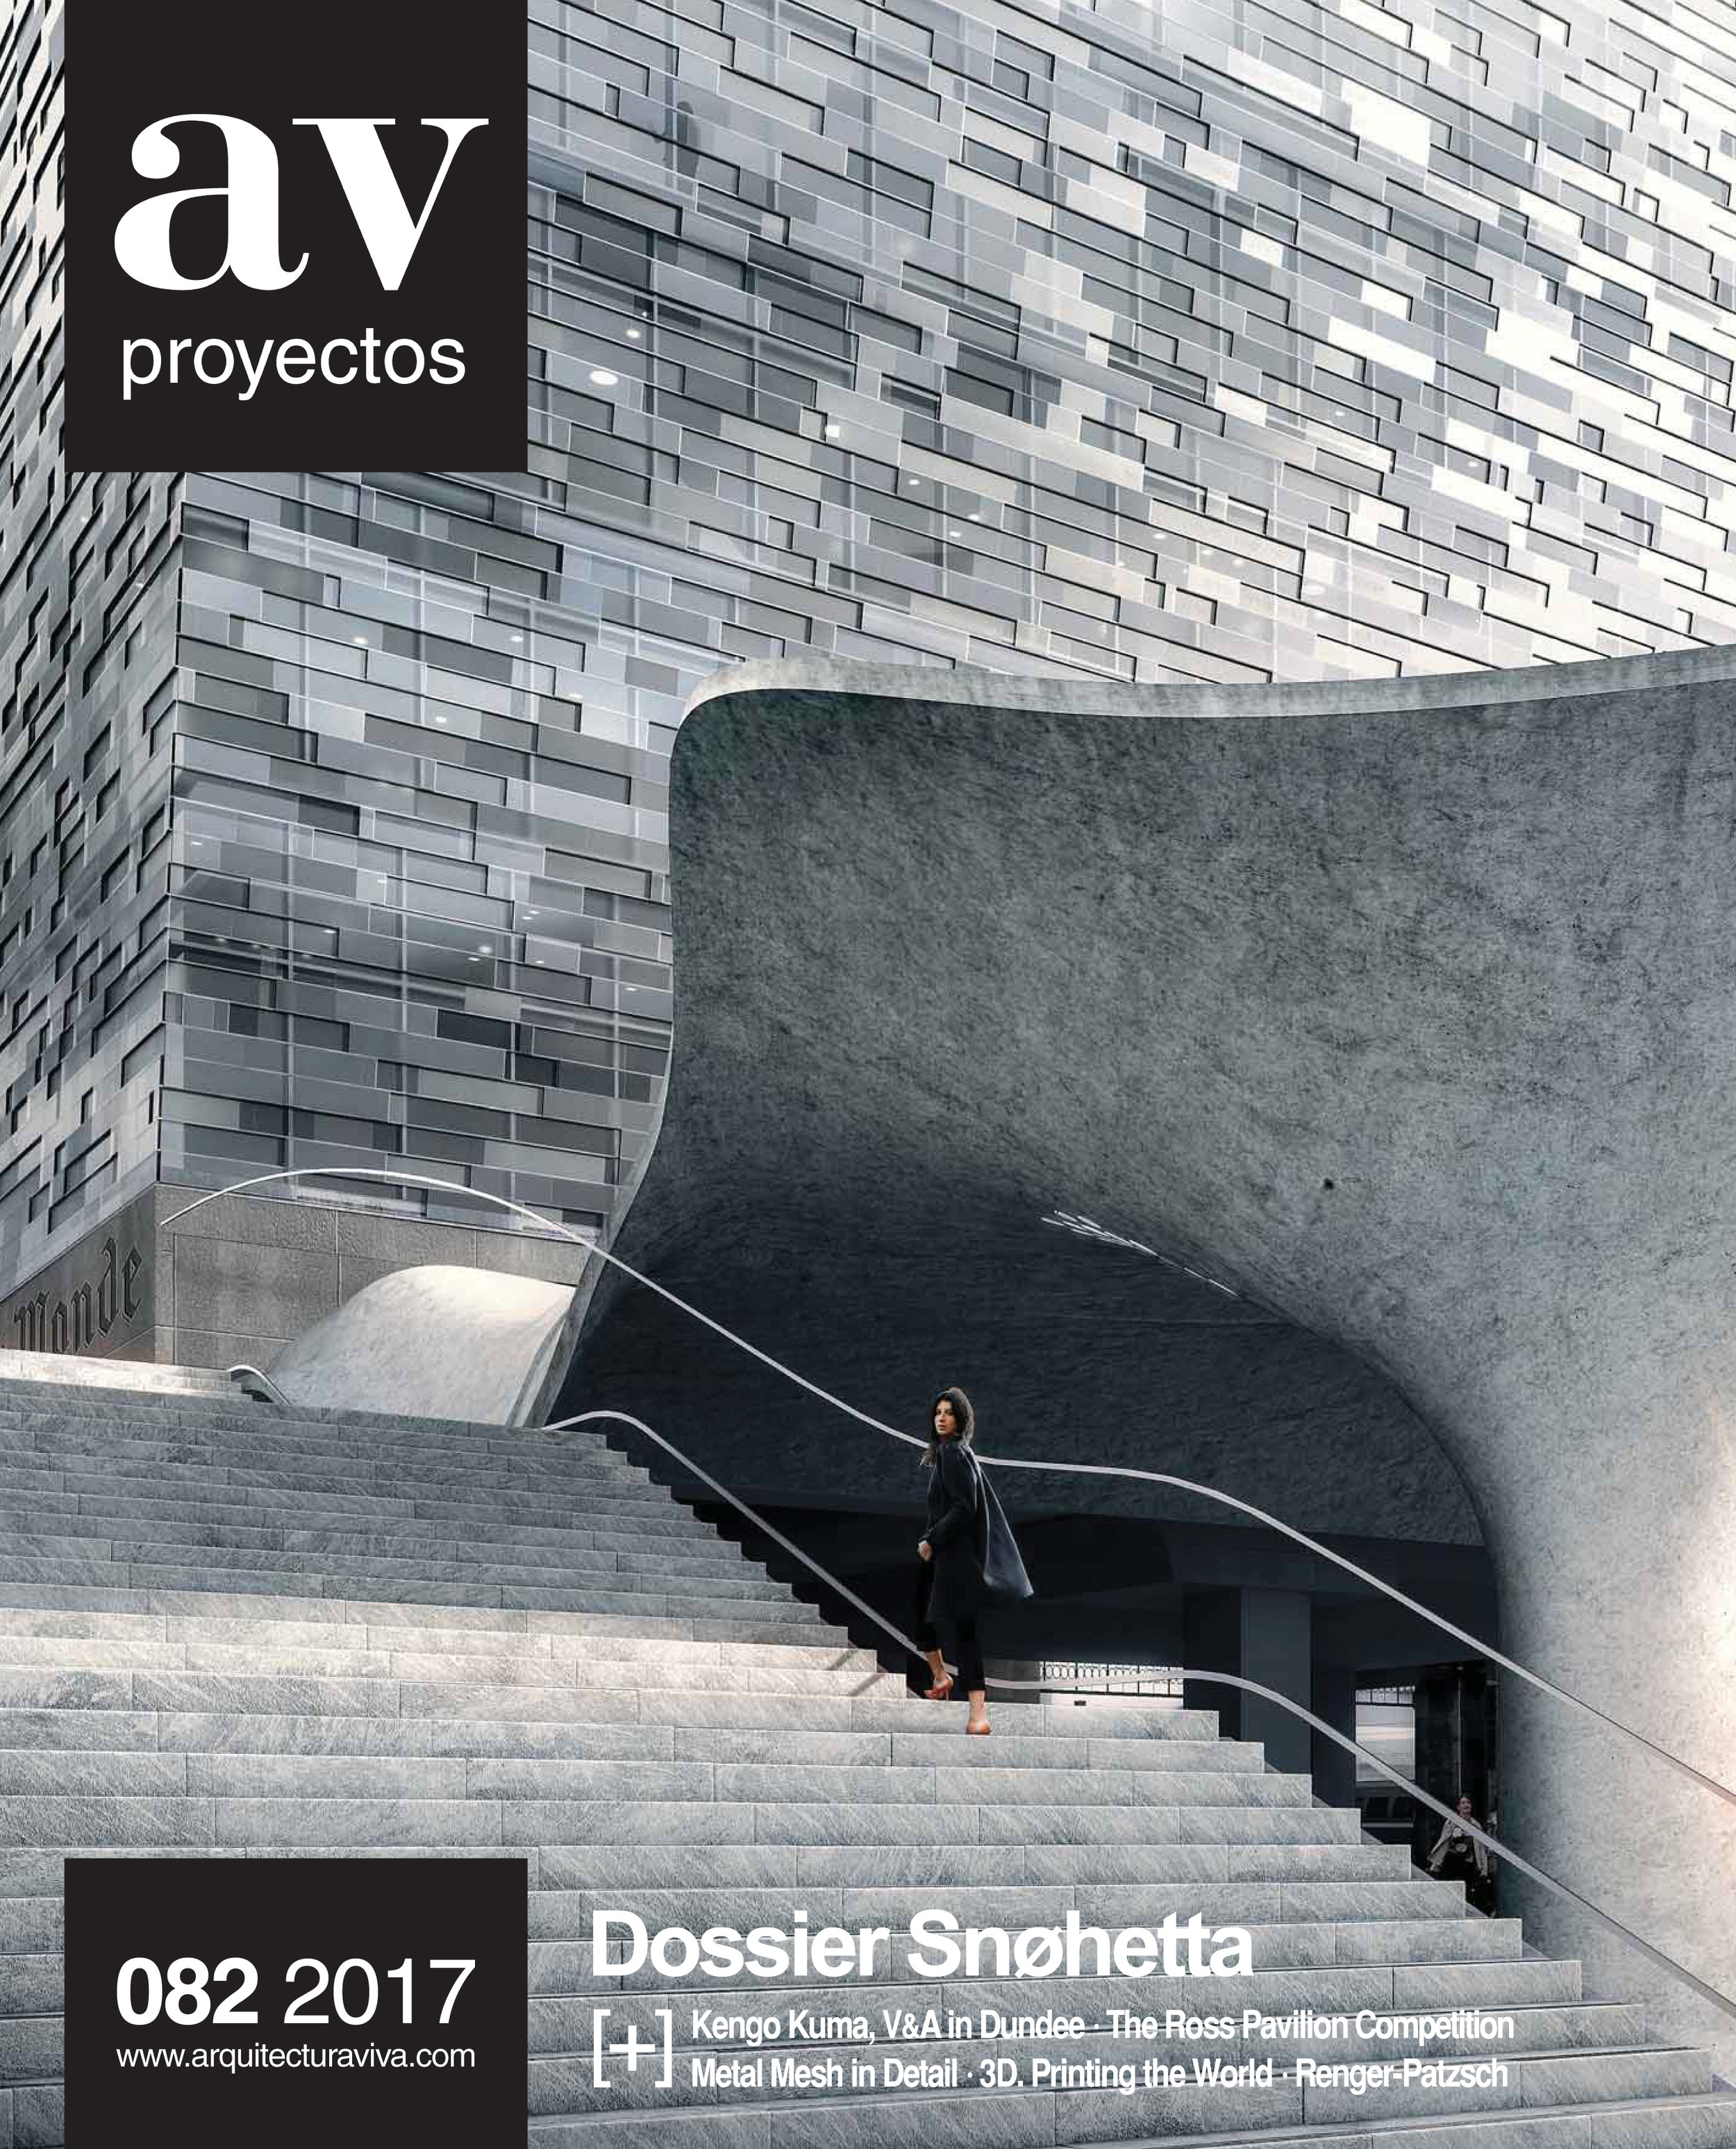 AV PROYECTOS ISSUE 82 / 2017